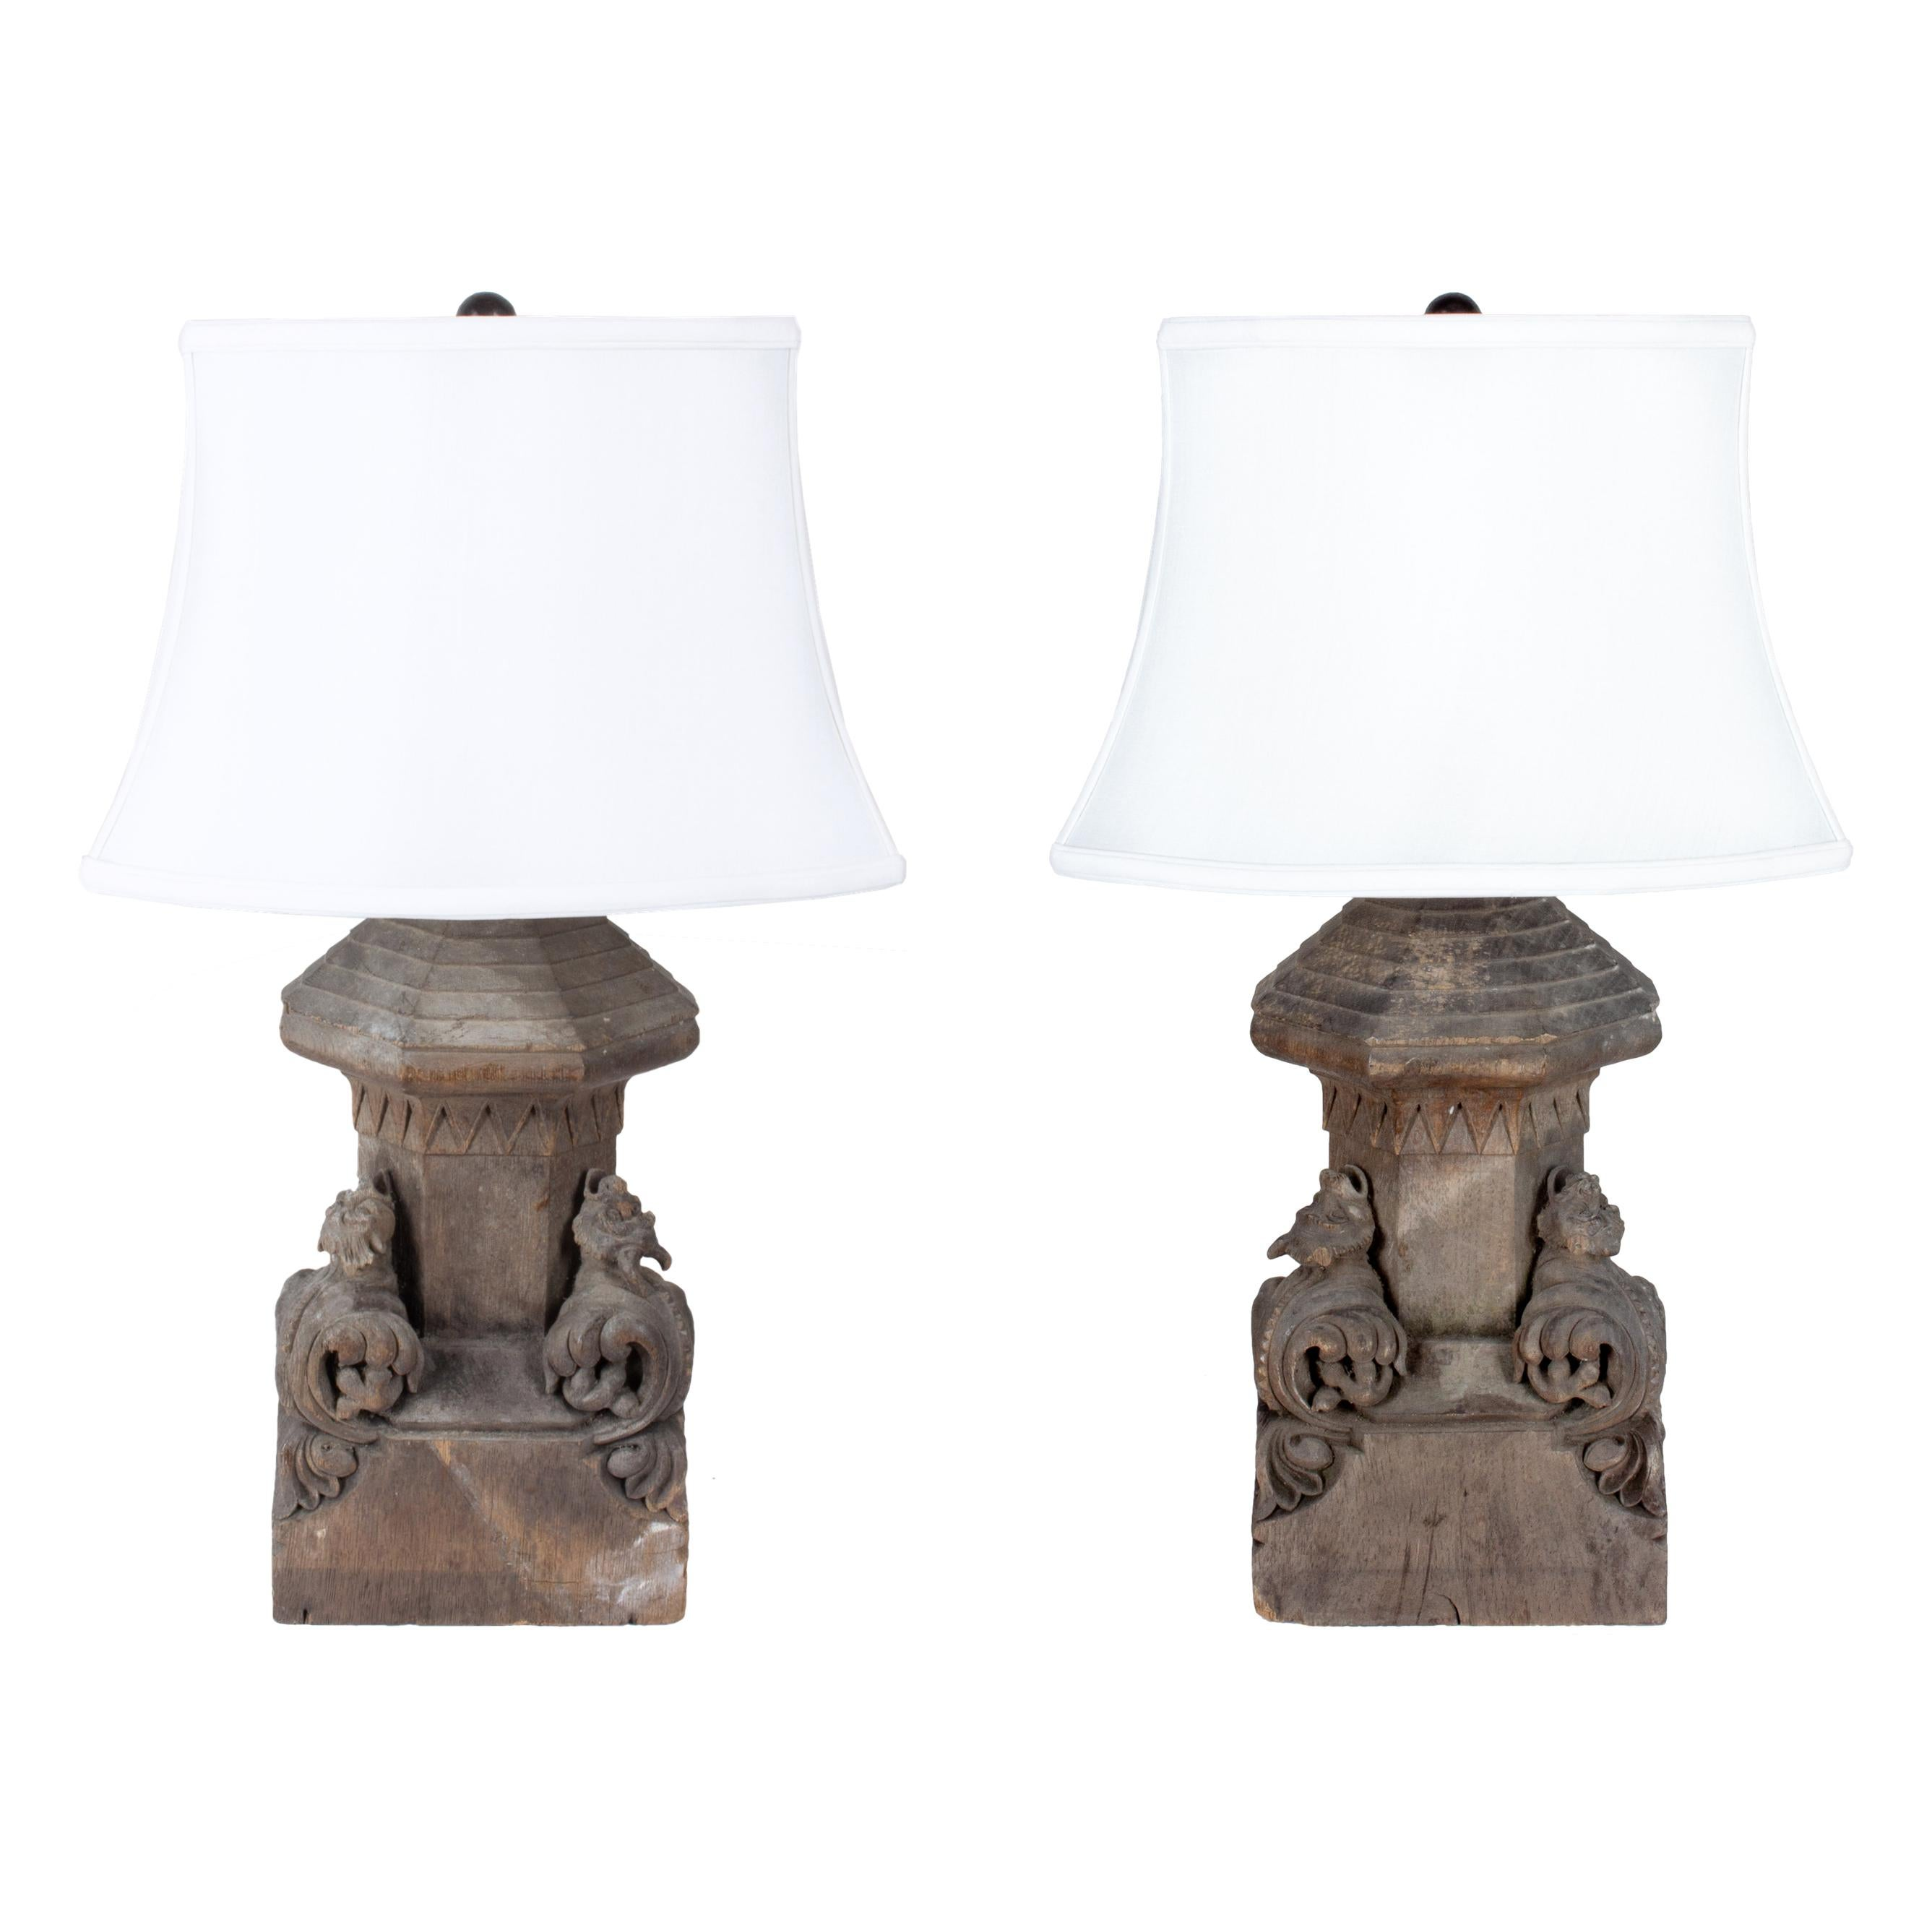 Superbe Pair Of Antique French Gothic Wood Architectural Fragment Lamps